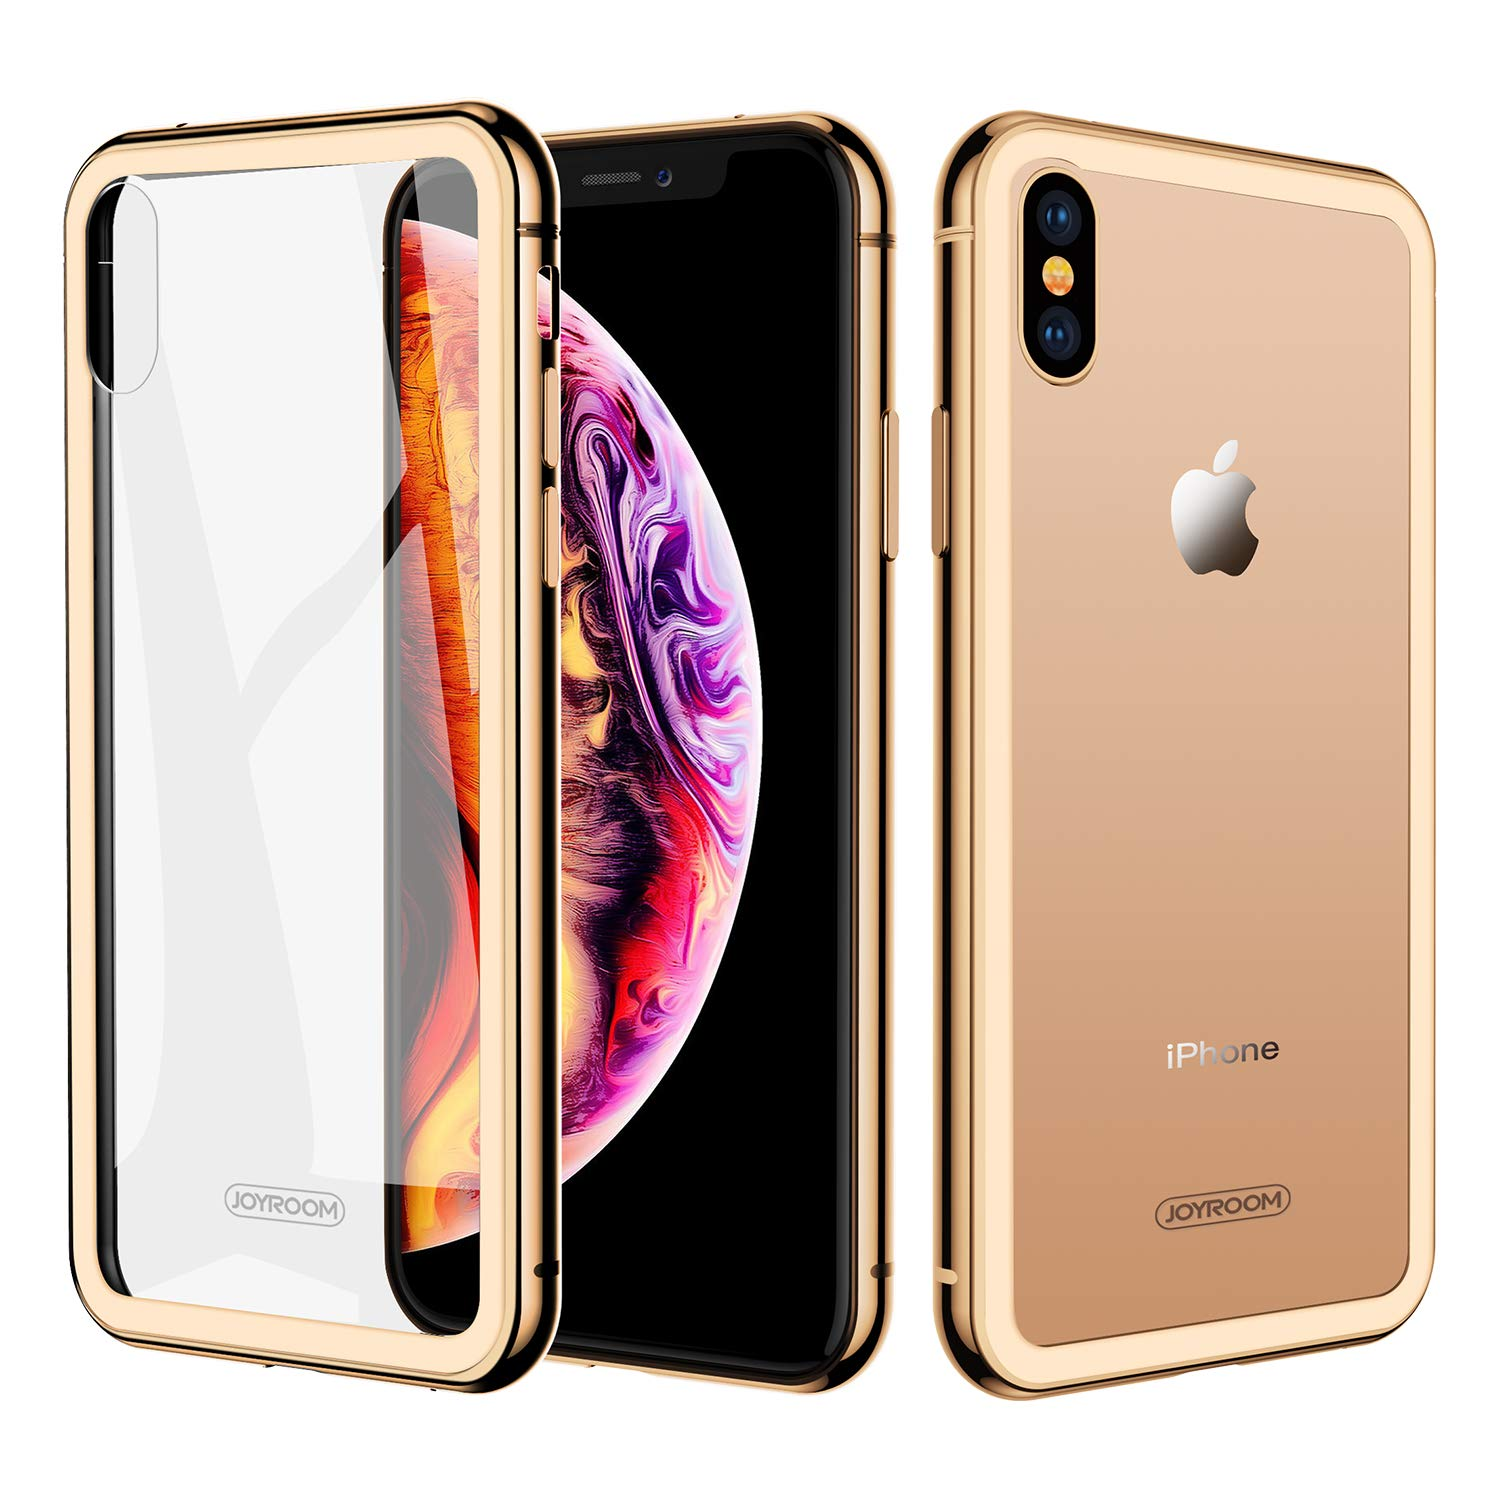 JOYROOM Crystal Clear Glass Case for iPhone Xs Max, Hard Slim Thin Metal Bumper with Soft TPU Inner Frame Case, Anti-Scratch 9H Glass Back Cover for iPhone 6.5 inch (Gold)